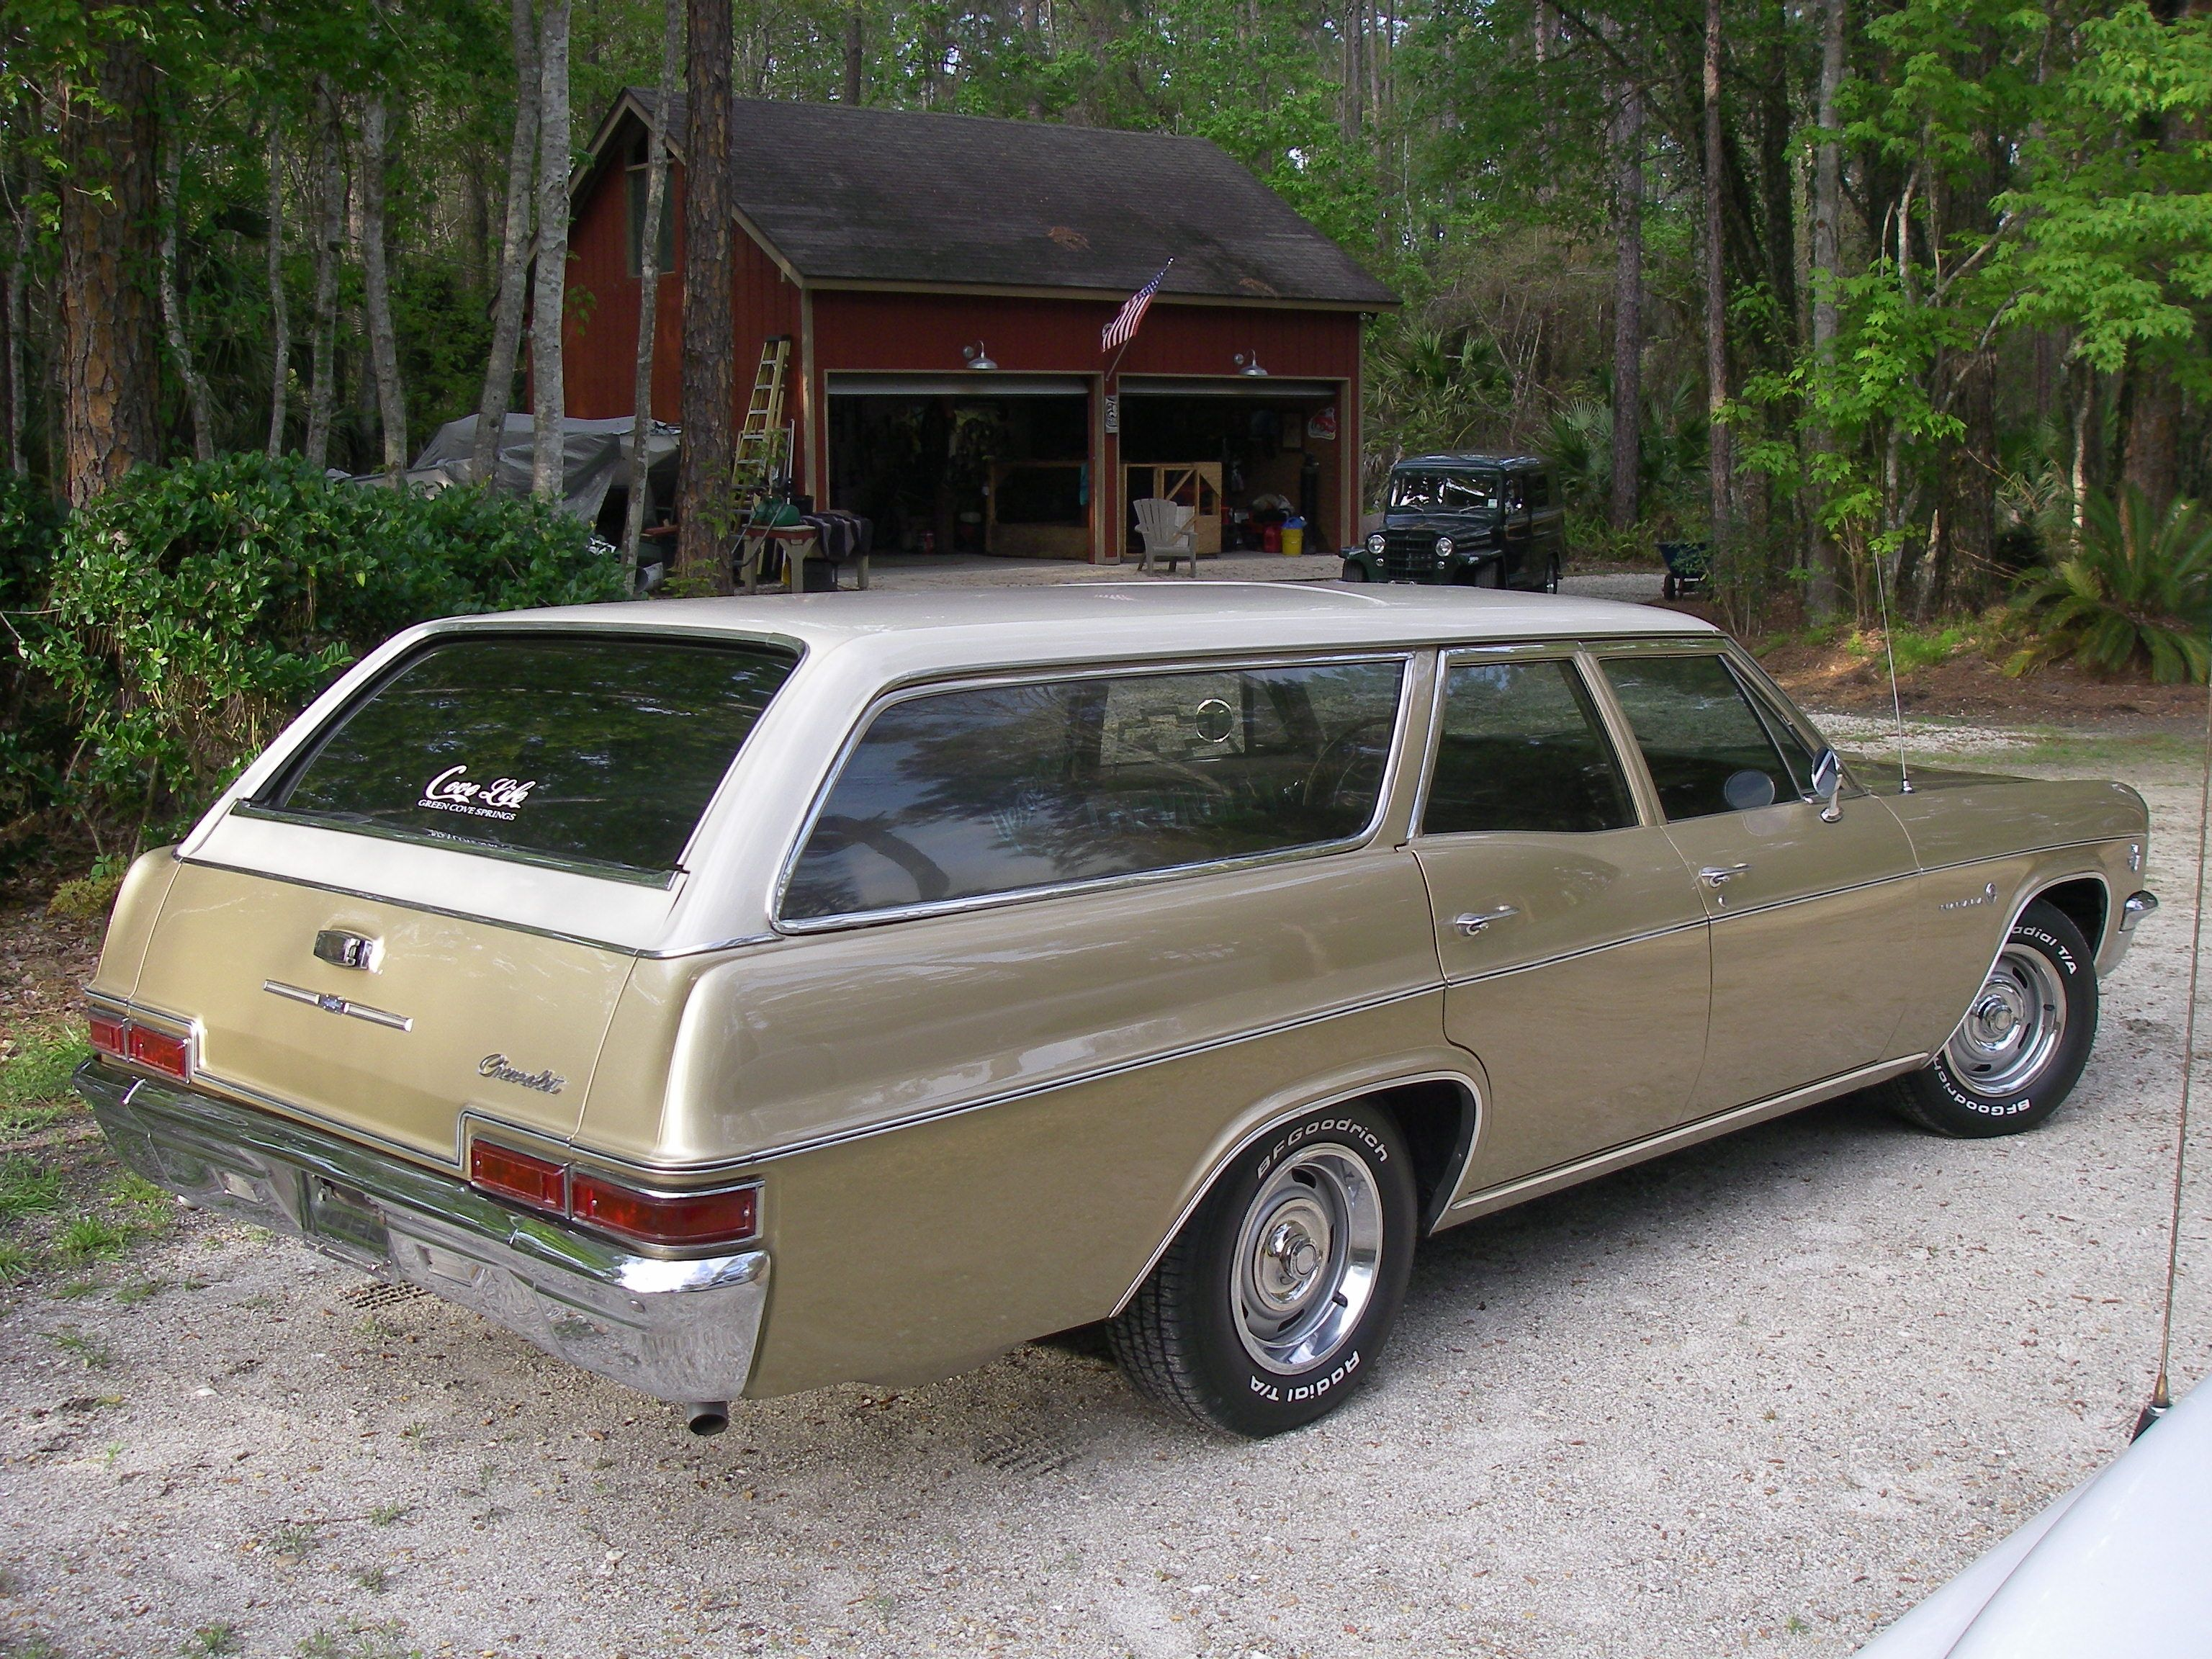 1966 Chevrolet Impala station wagon | My Favorite Great Cars Of ...